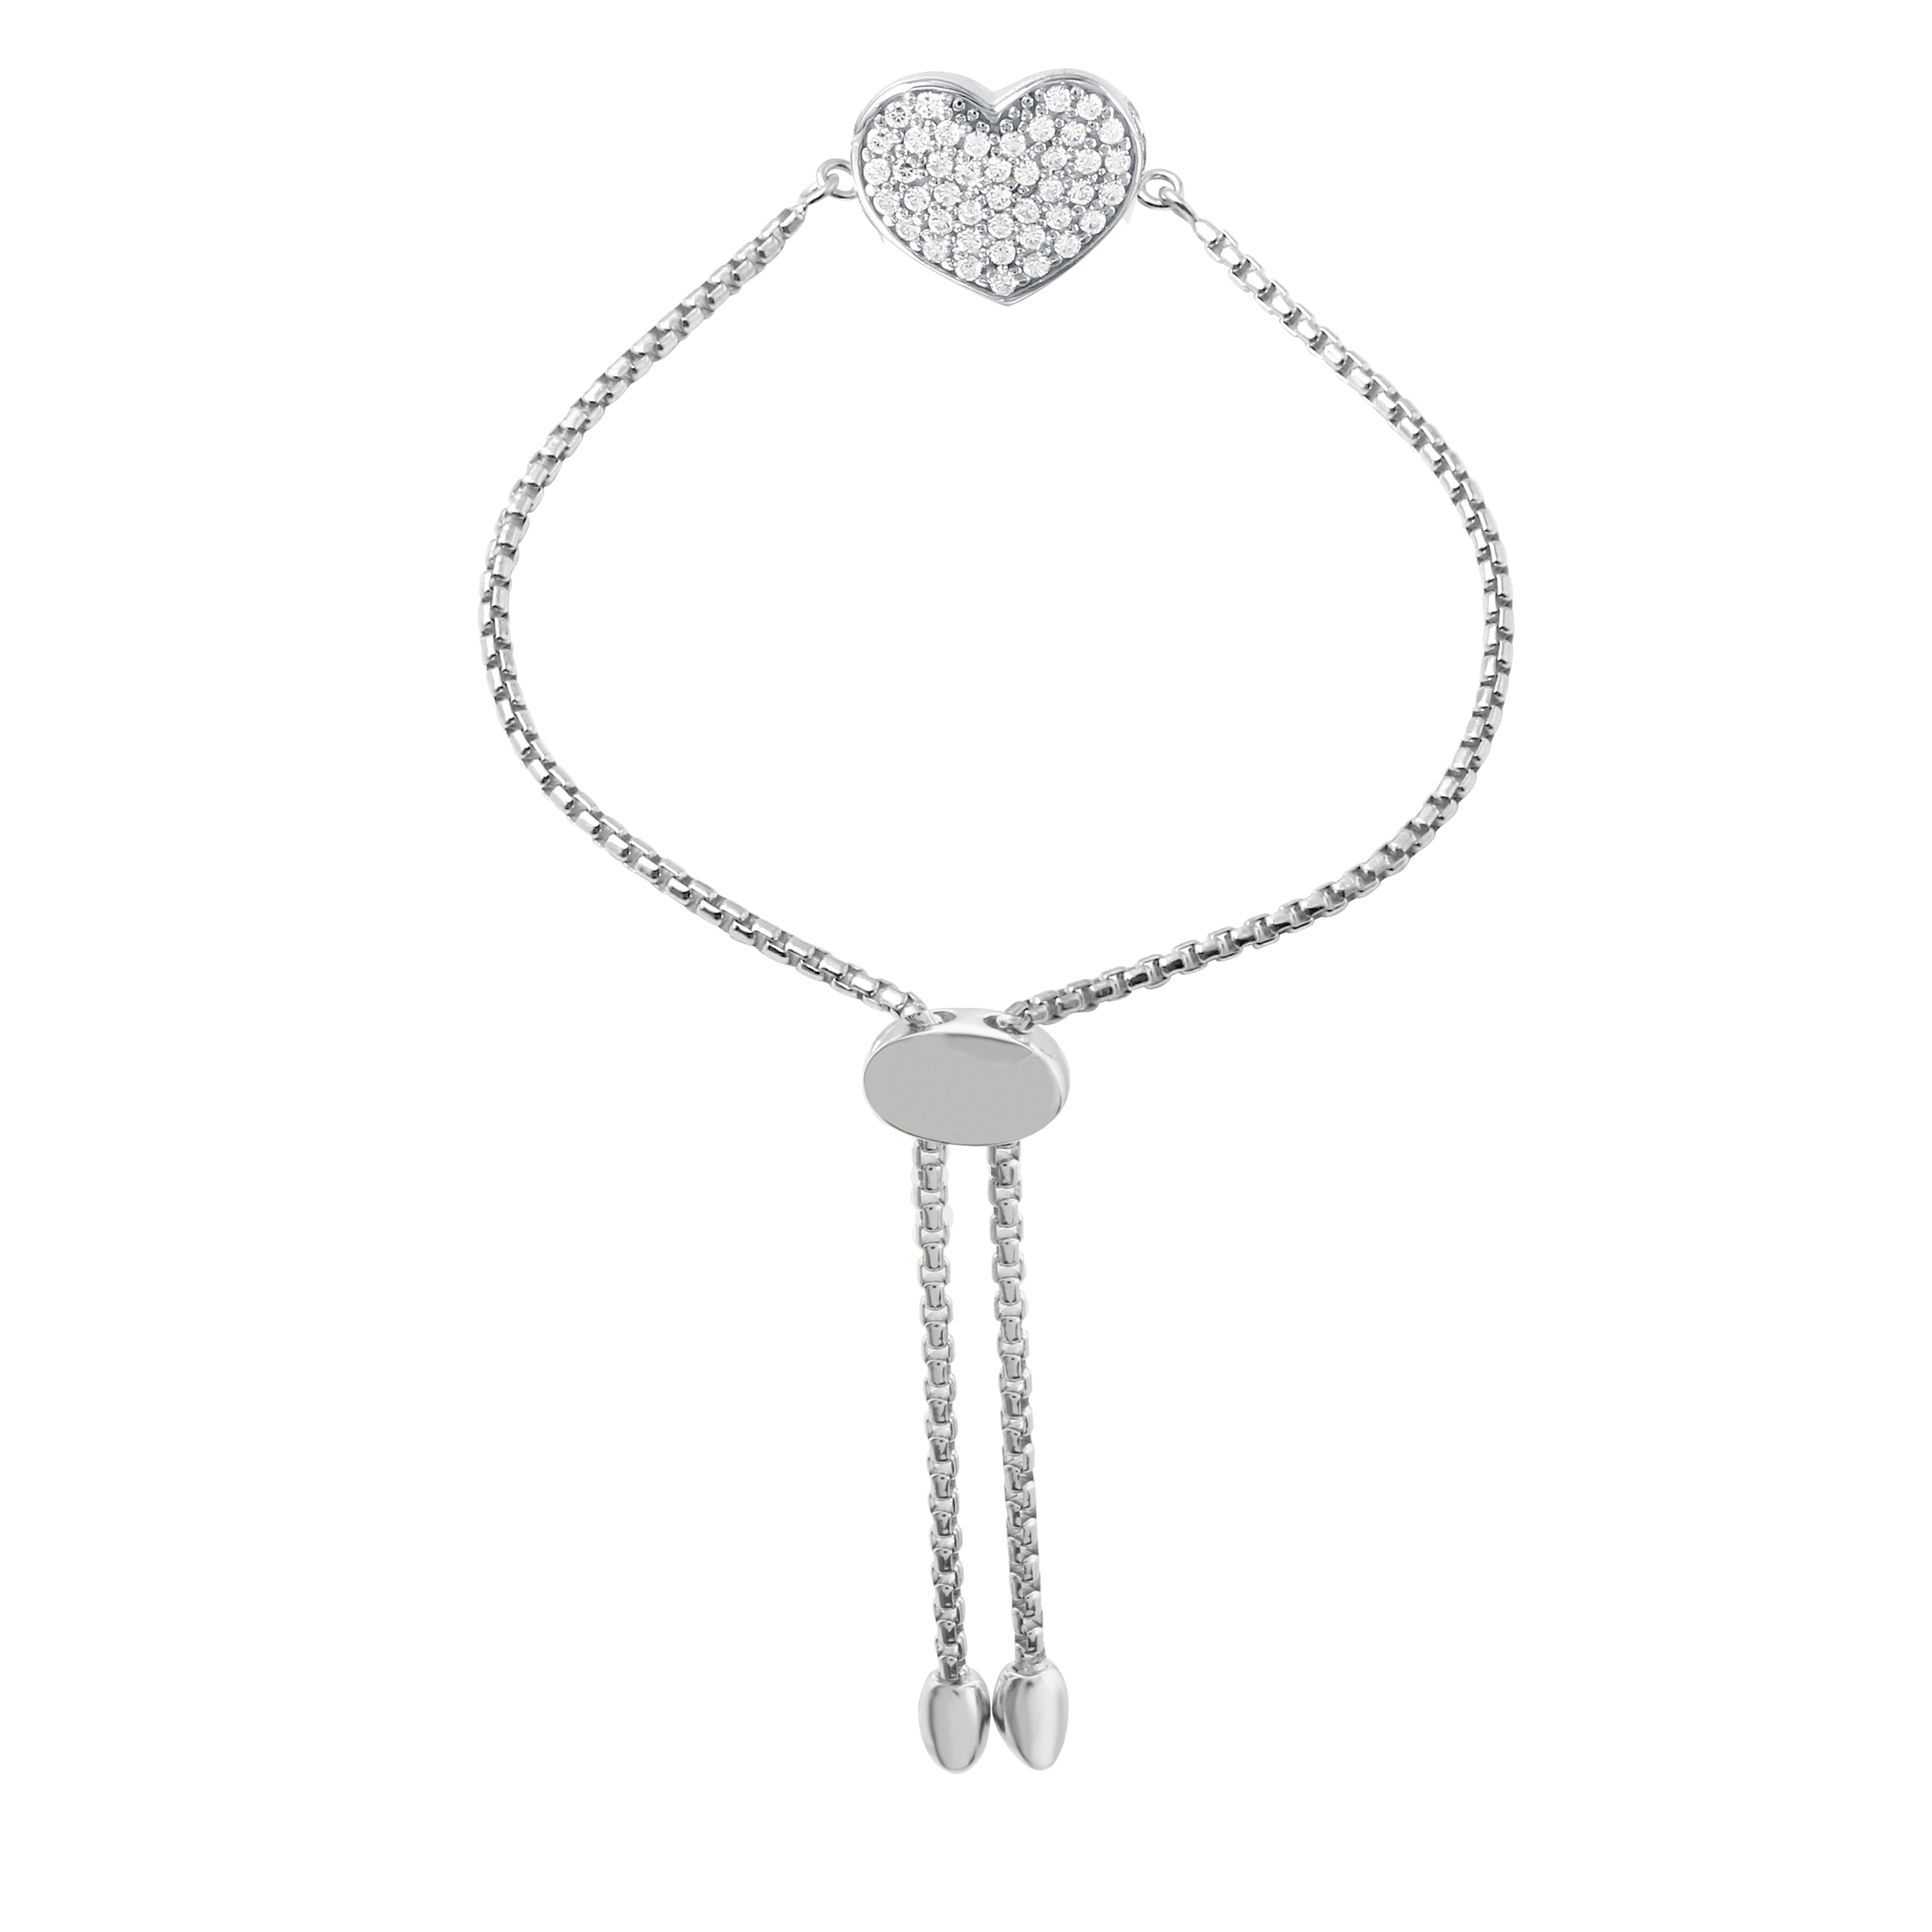 CHARLES GARNIER - Sterling Silver and CZ Heart Bracelet